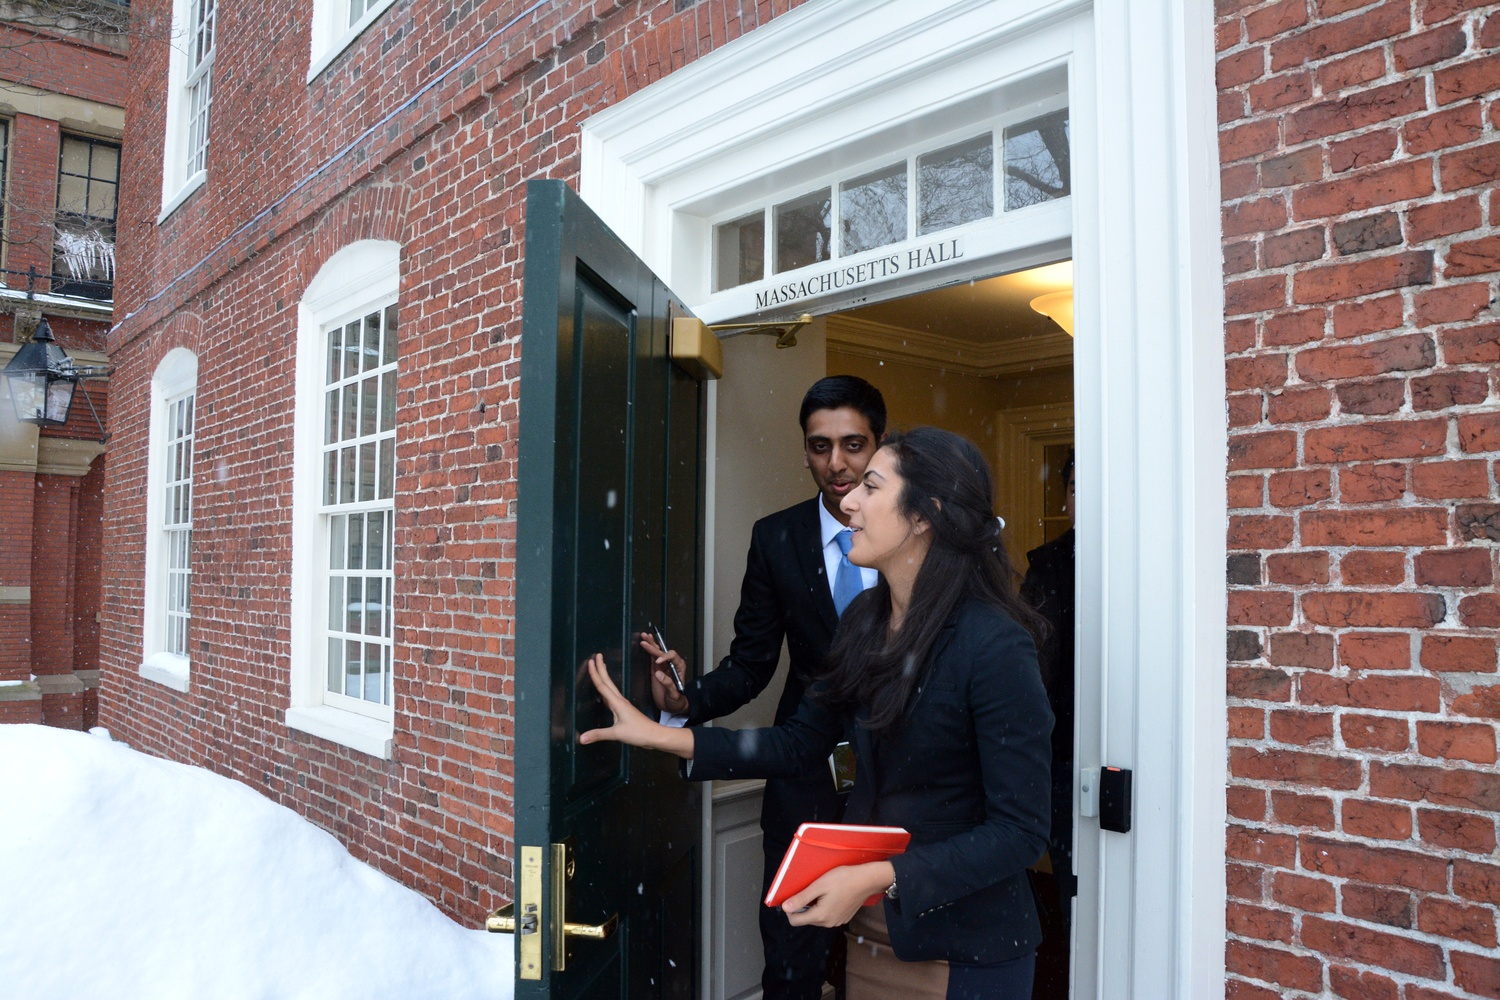 Undergraduate Council President Ava Nasrollahzadeh '16 and Vice President Dhruv P. Goyal '16 leave University President Drew G. Faust's office after meeting with her in Massachusetts Hall on Feb. 18